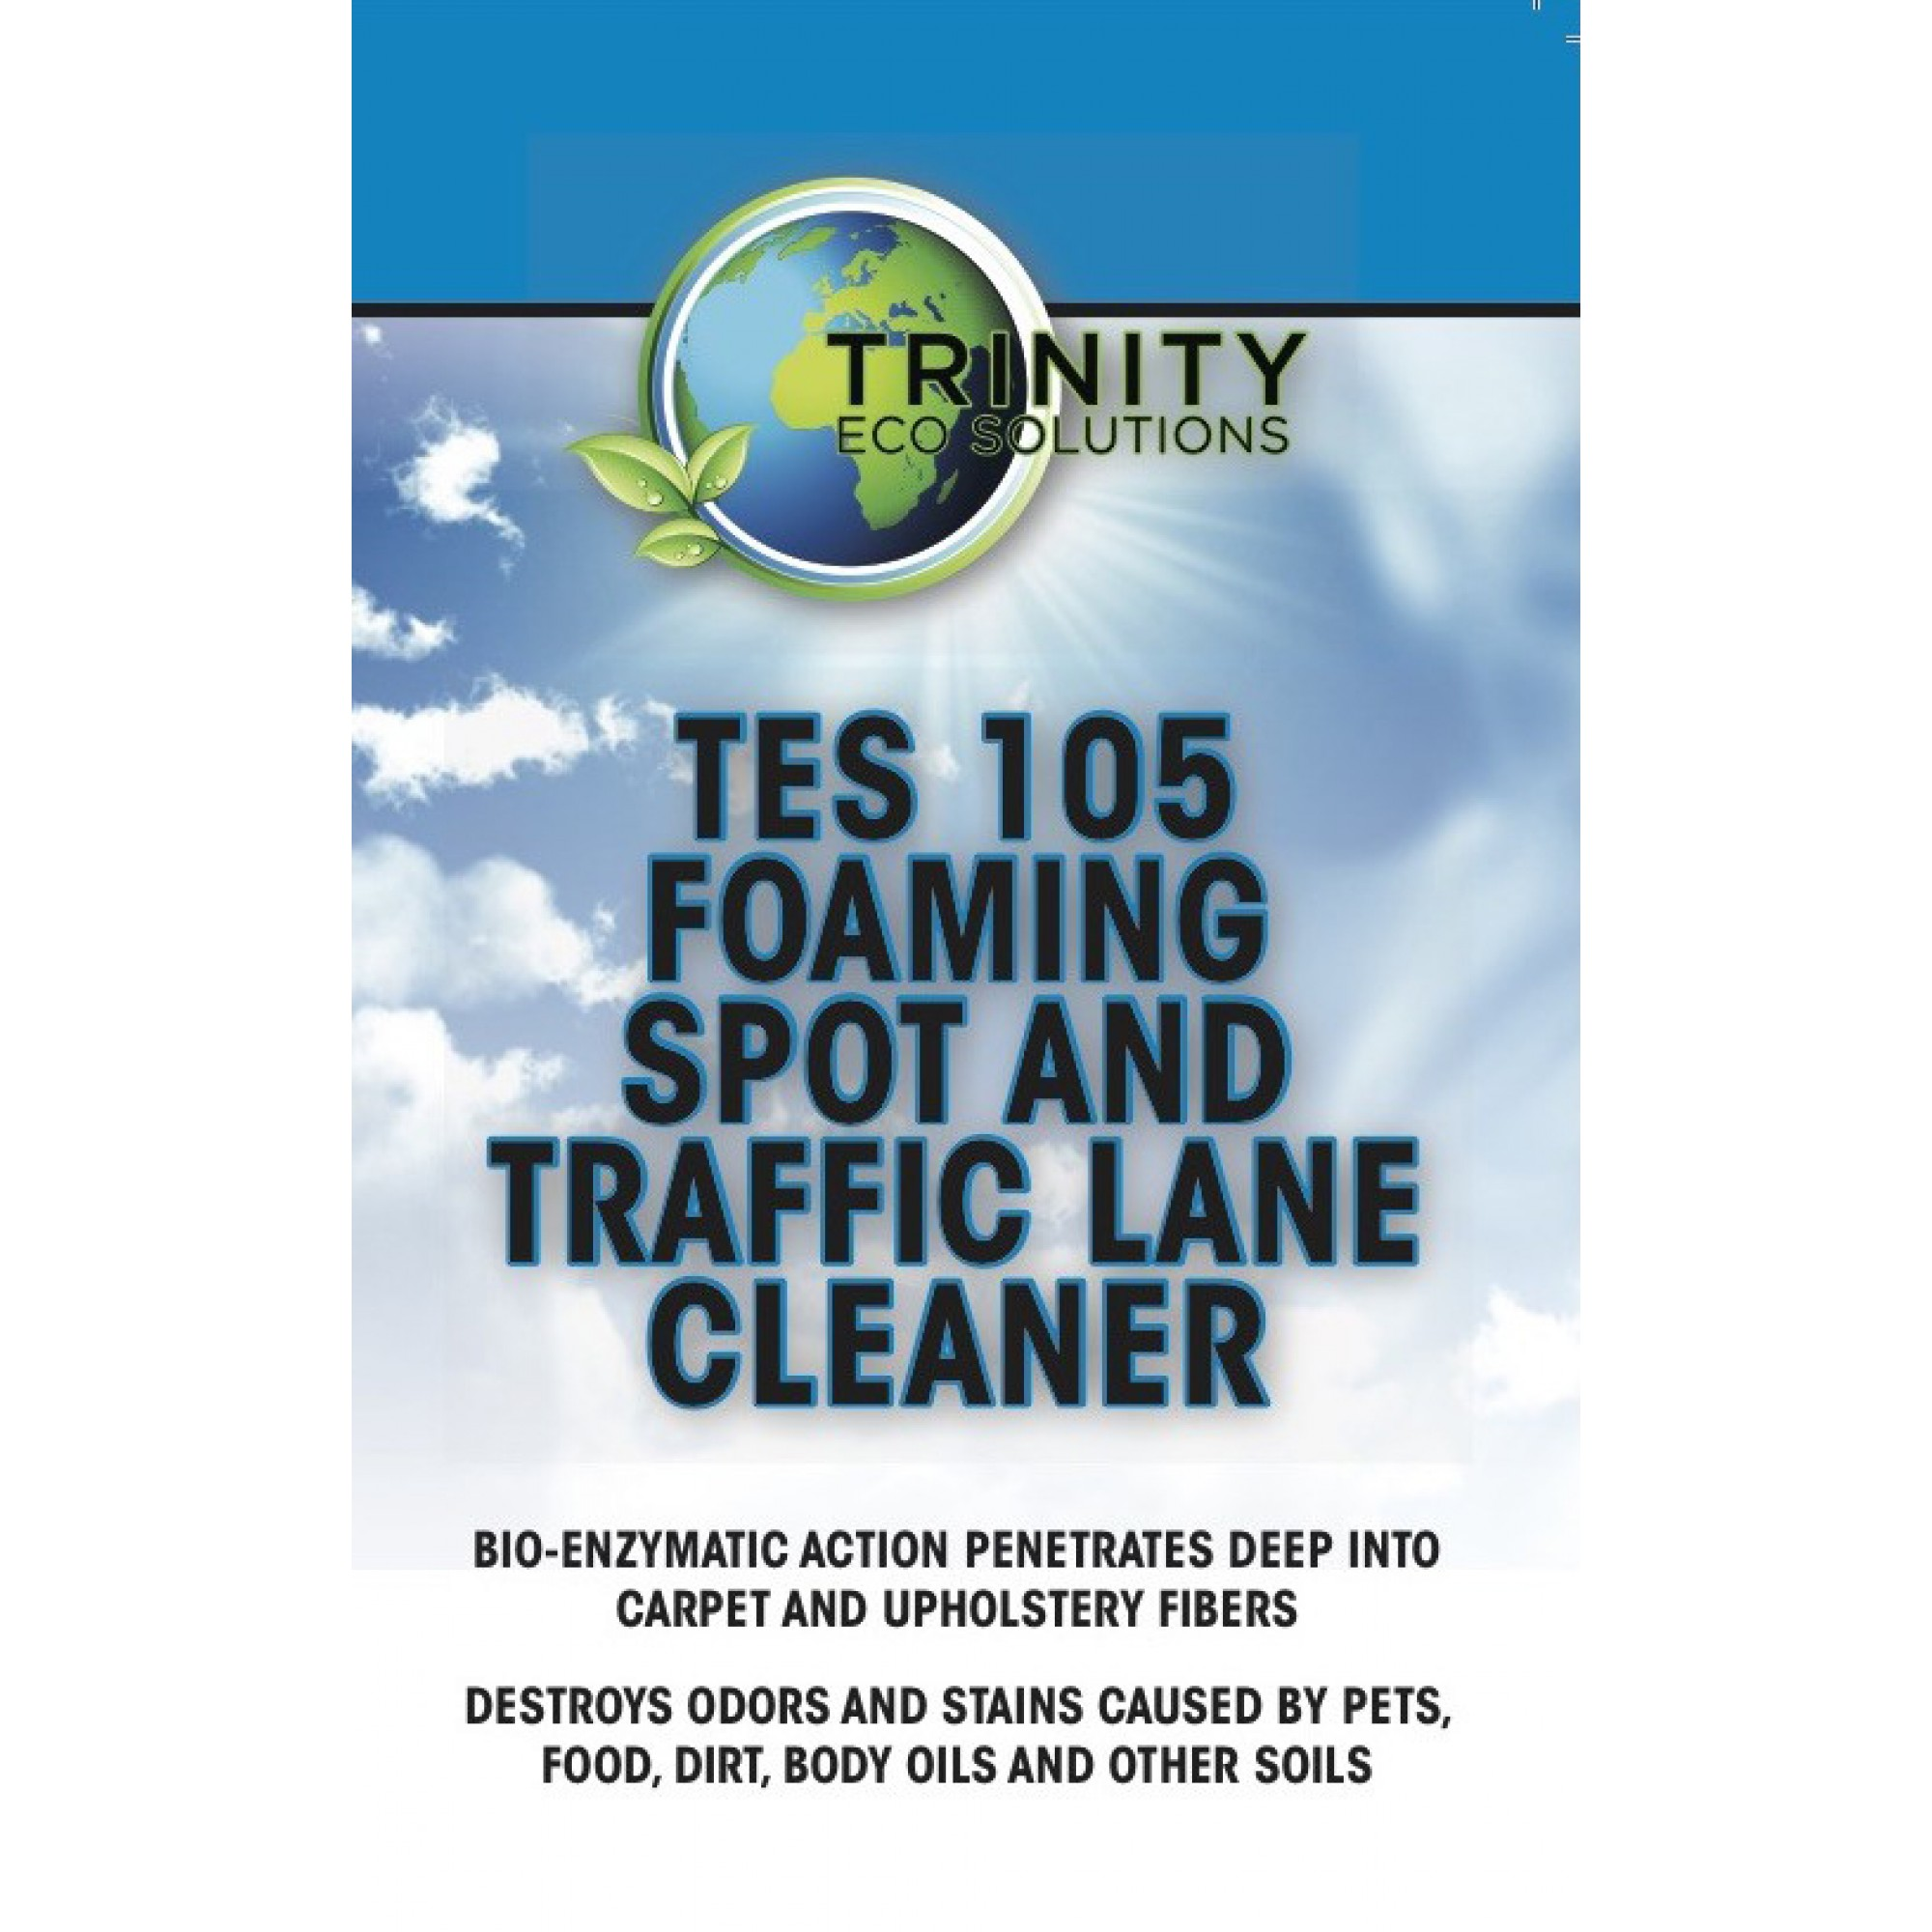 TES 105 Foaming Spot and Traffic Lane Cleaner